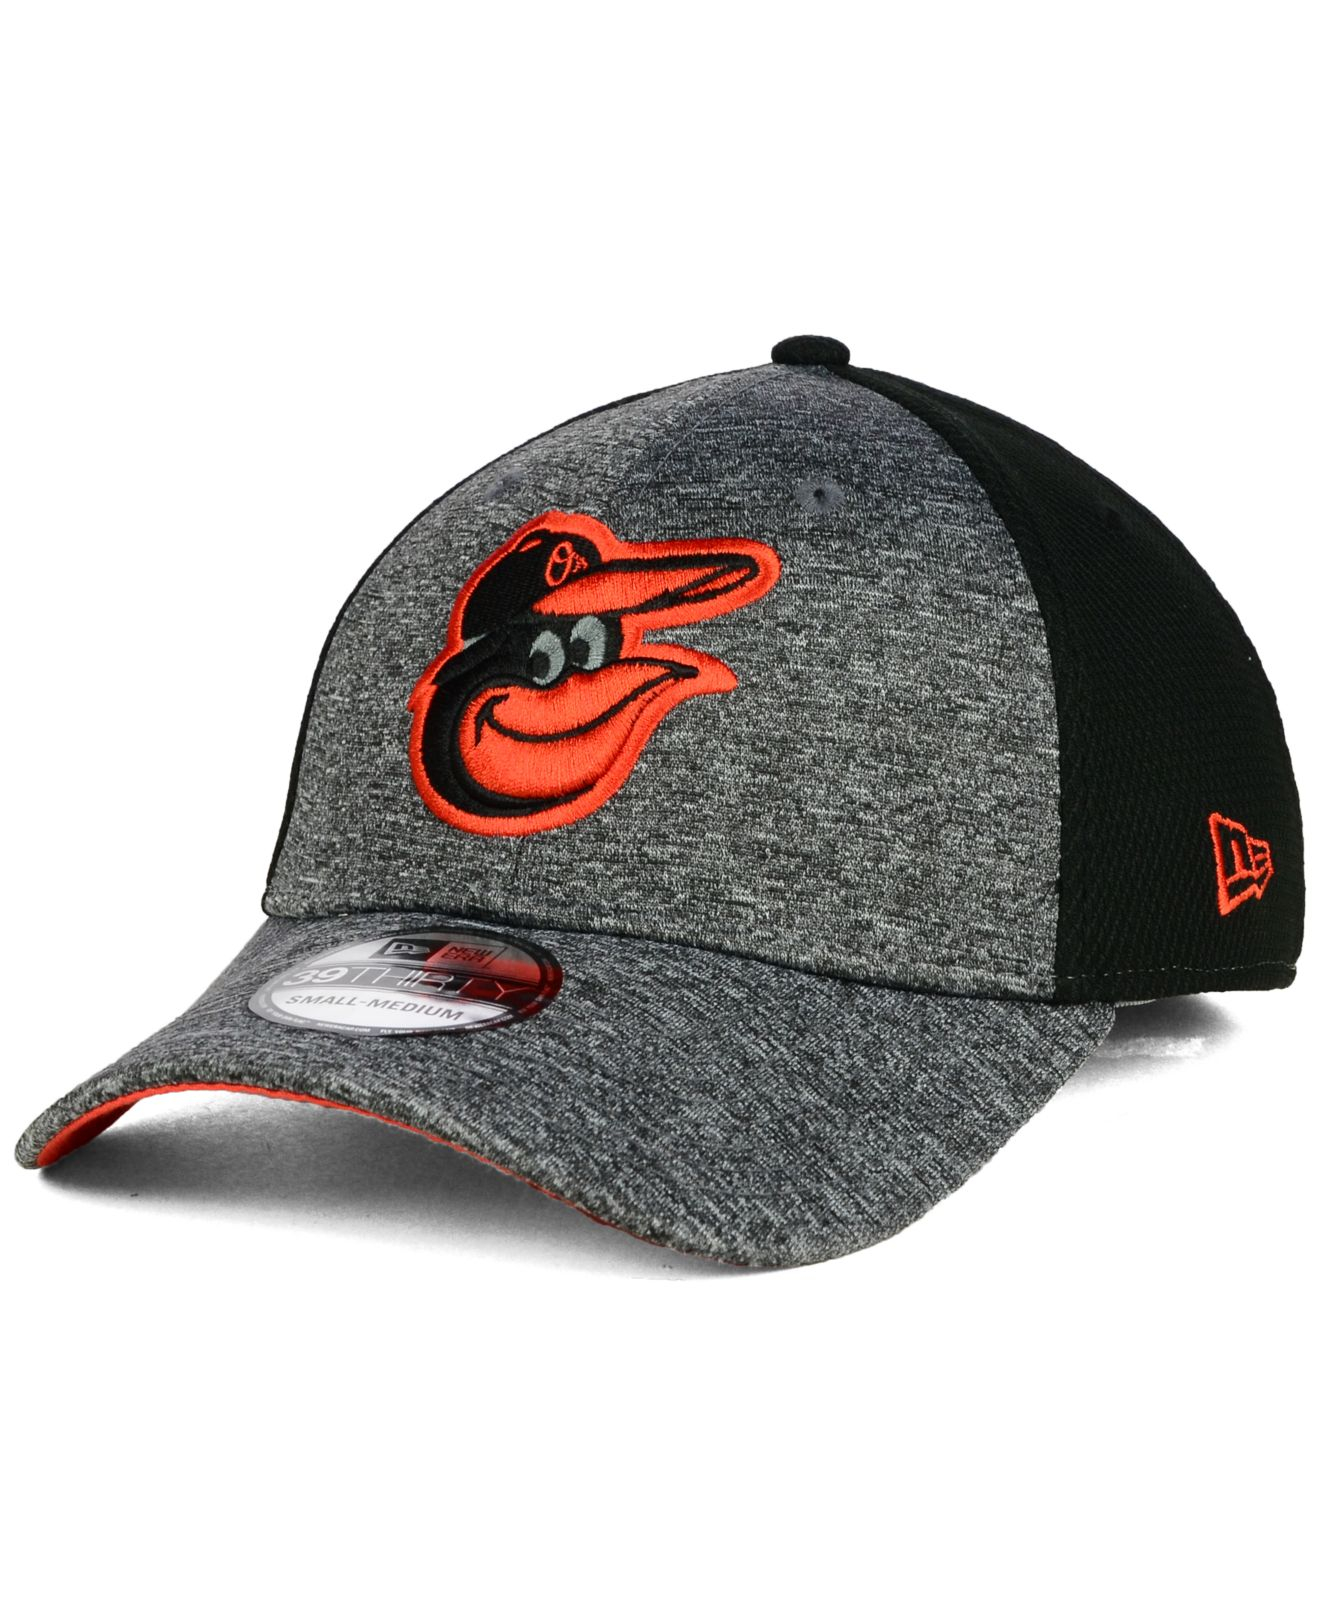 quality design b8ee3 d896e norway lyst ktz baltimore orioles tech fuse 39thirty cap in black for men  a5c1b c6ae8